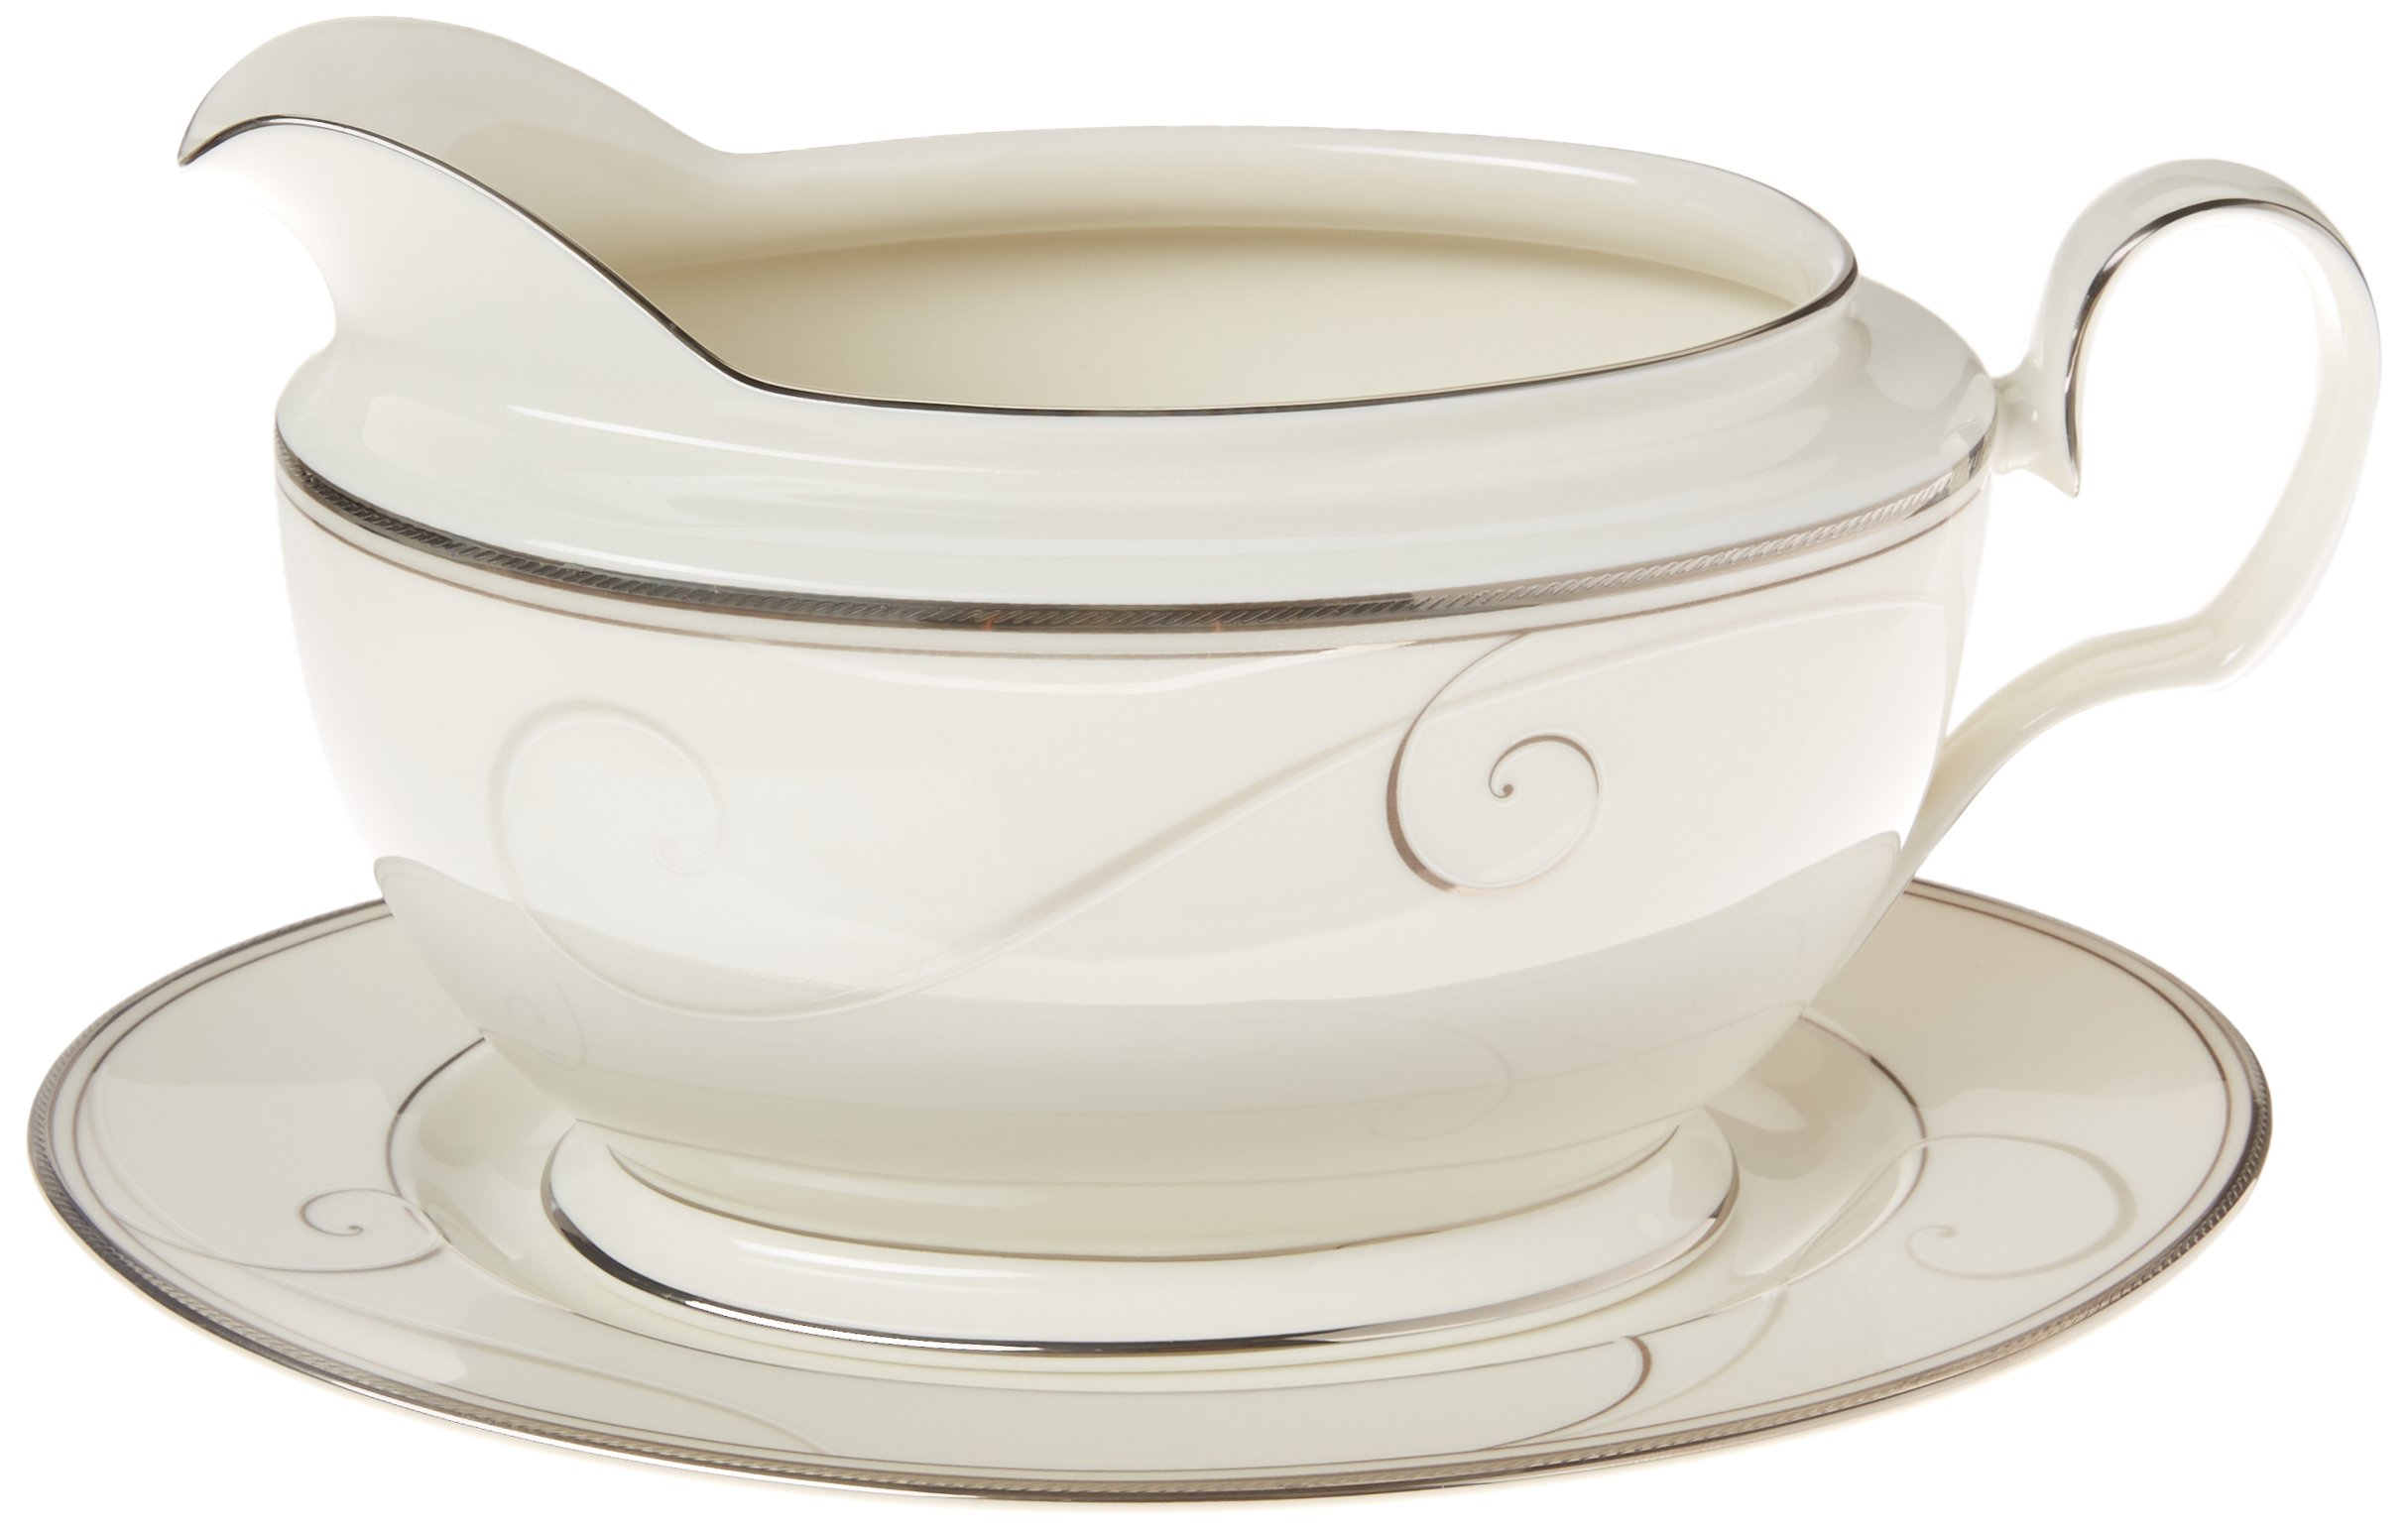 Noritake Platinum Wave 2-Piece Gravy Boat with Tray